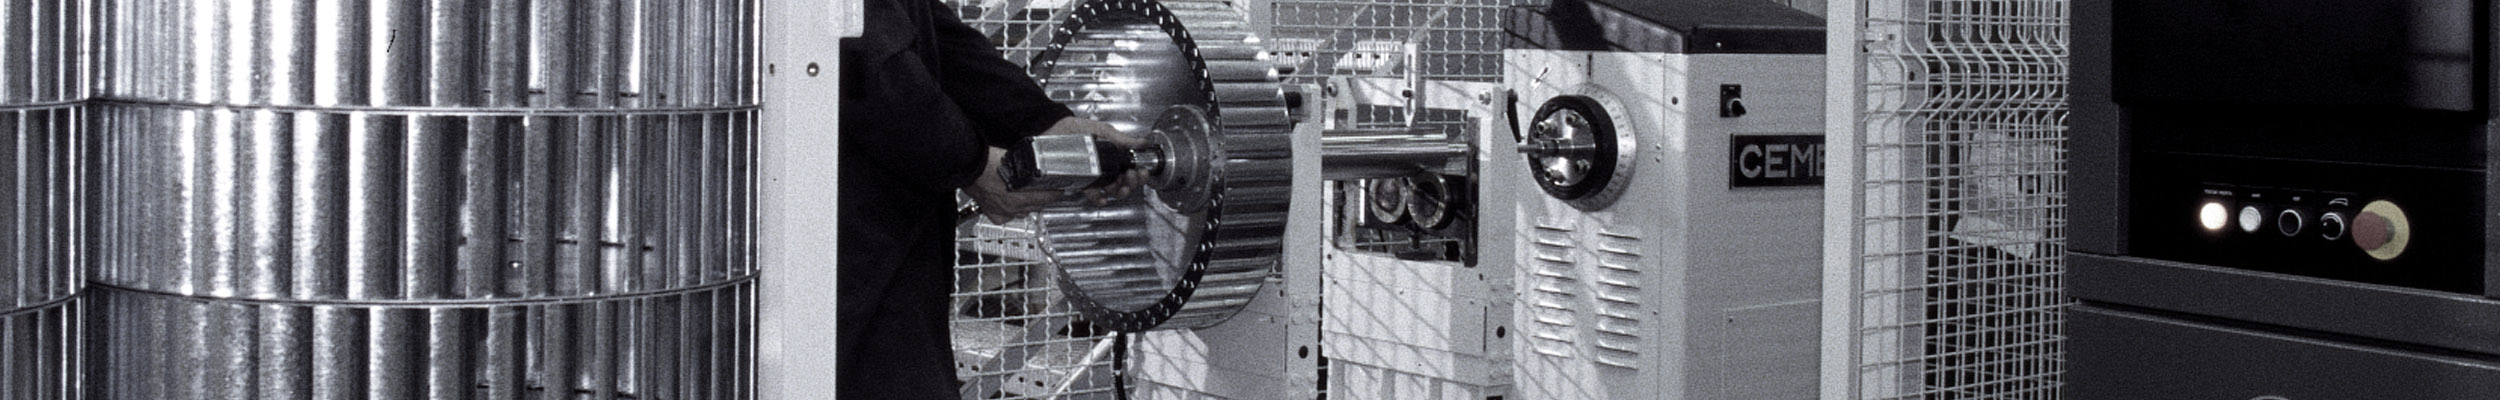 RL SERIES – Centrifugal fans with welded reverse curved blades